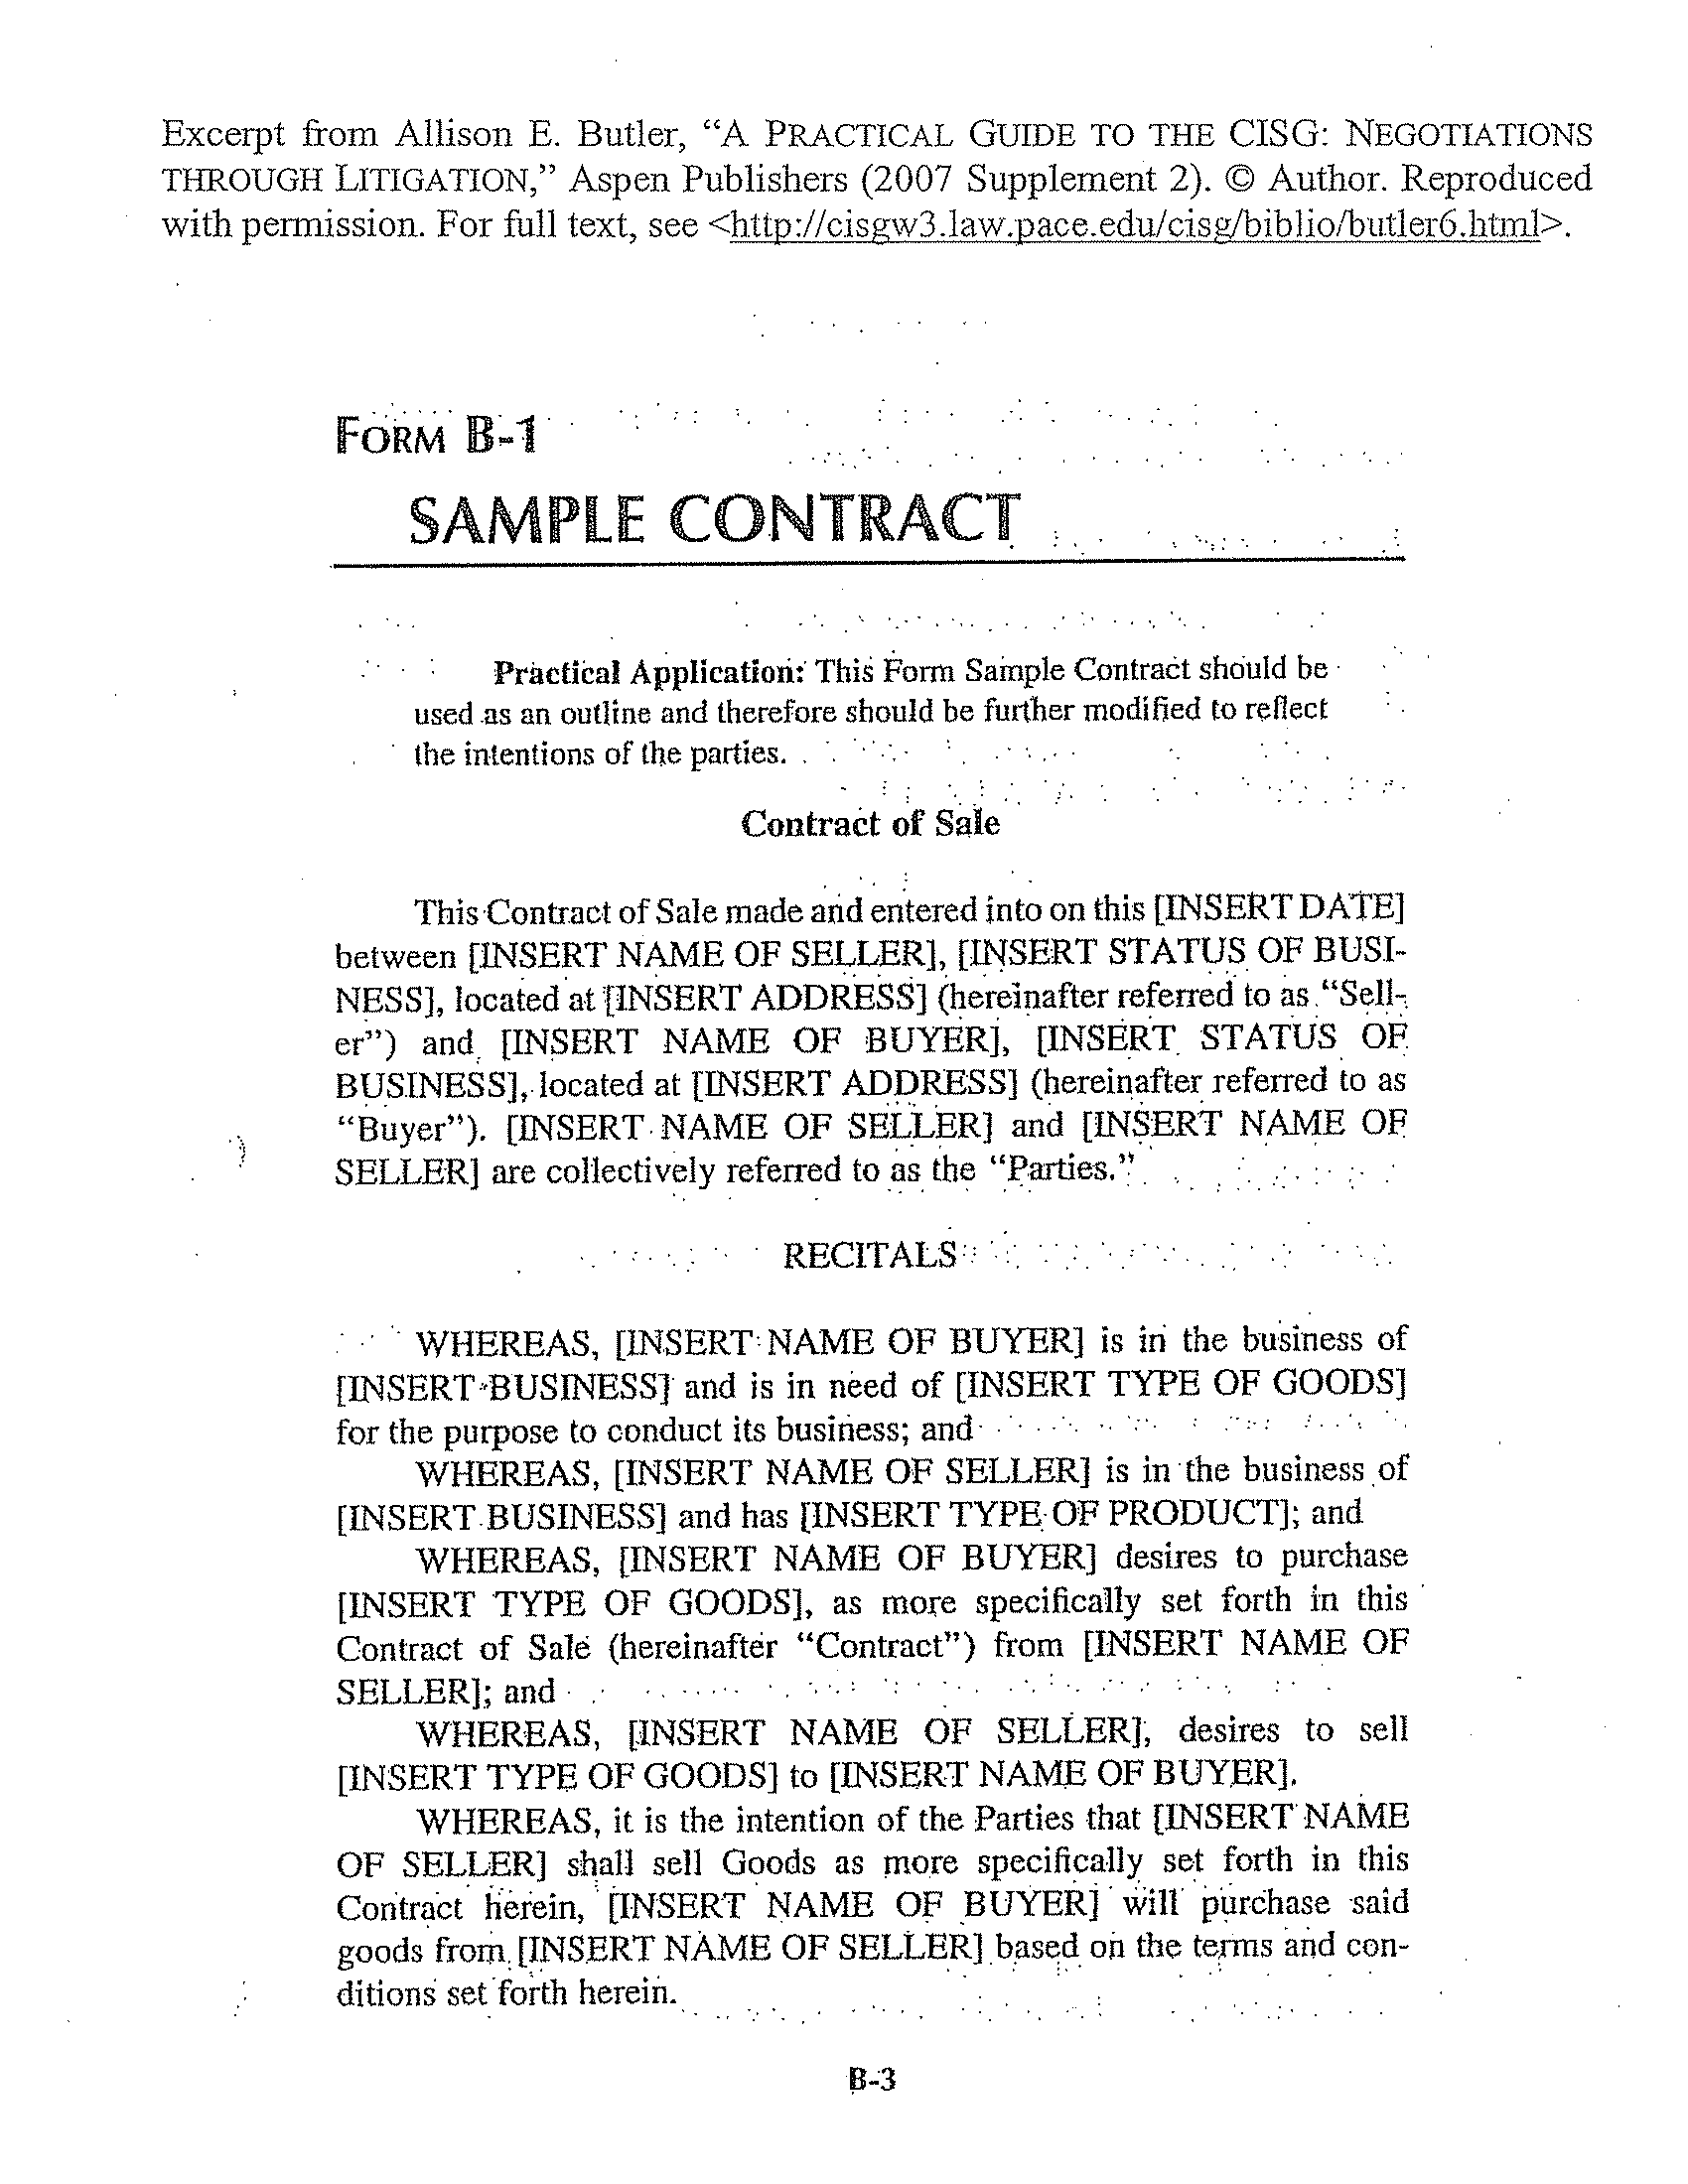 contract of sale 01